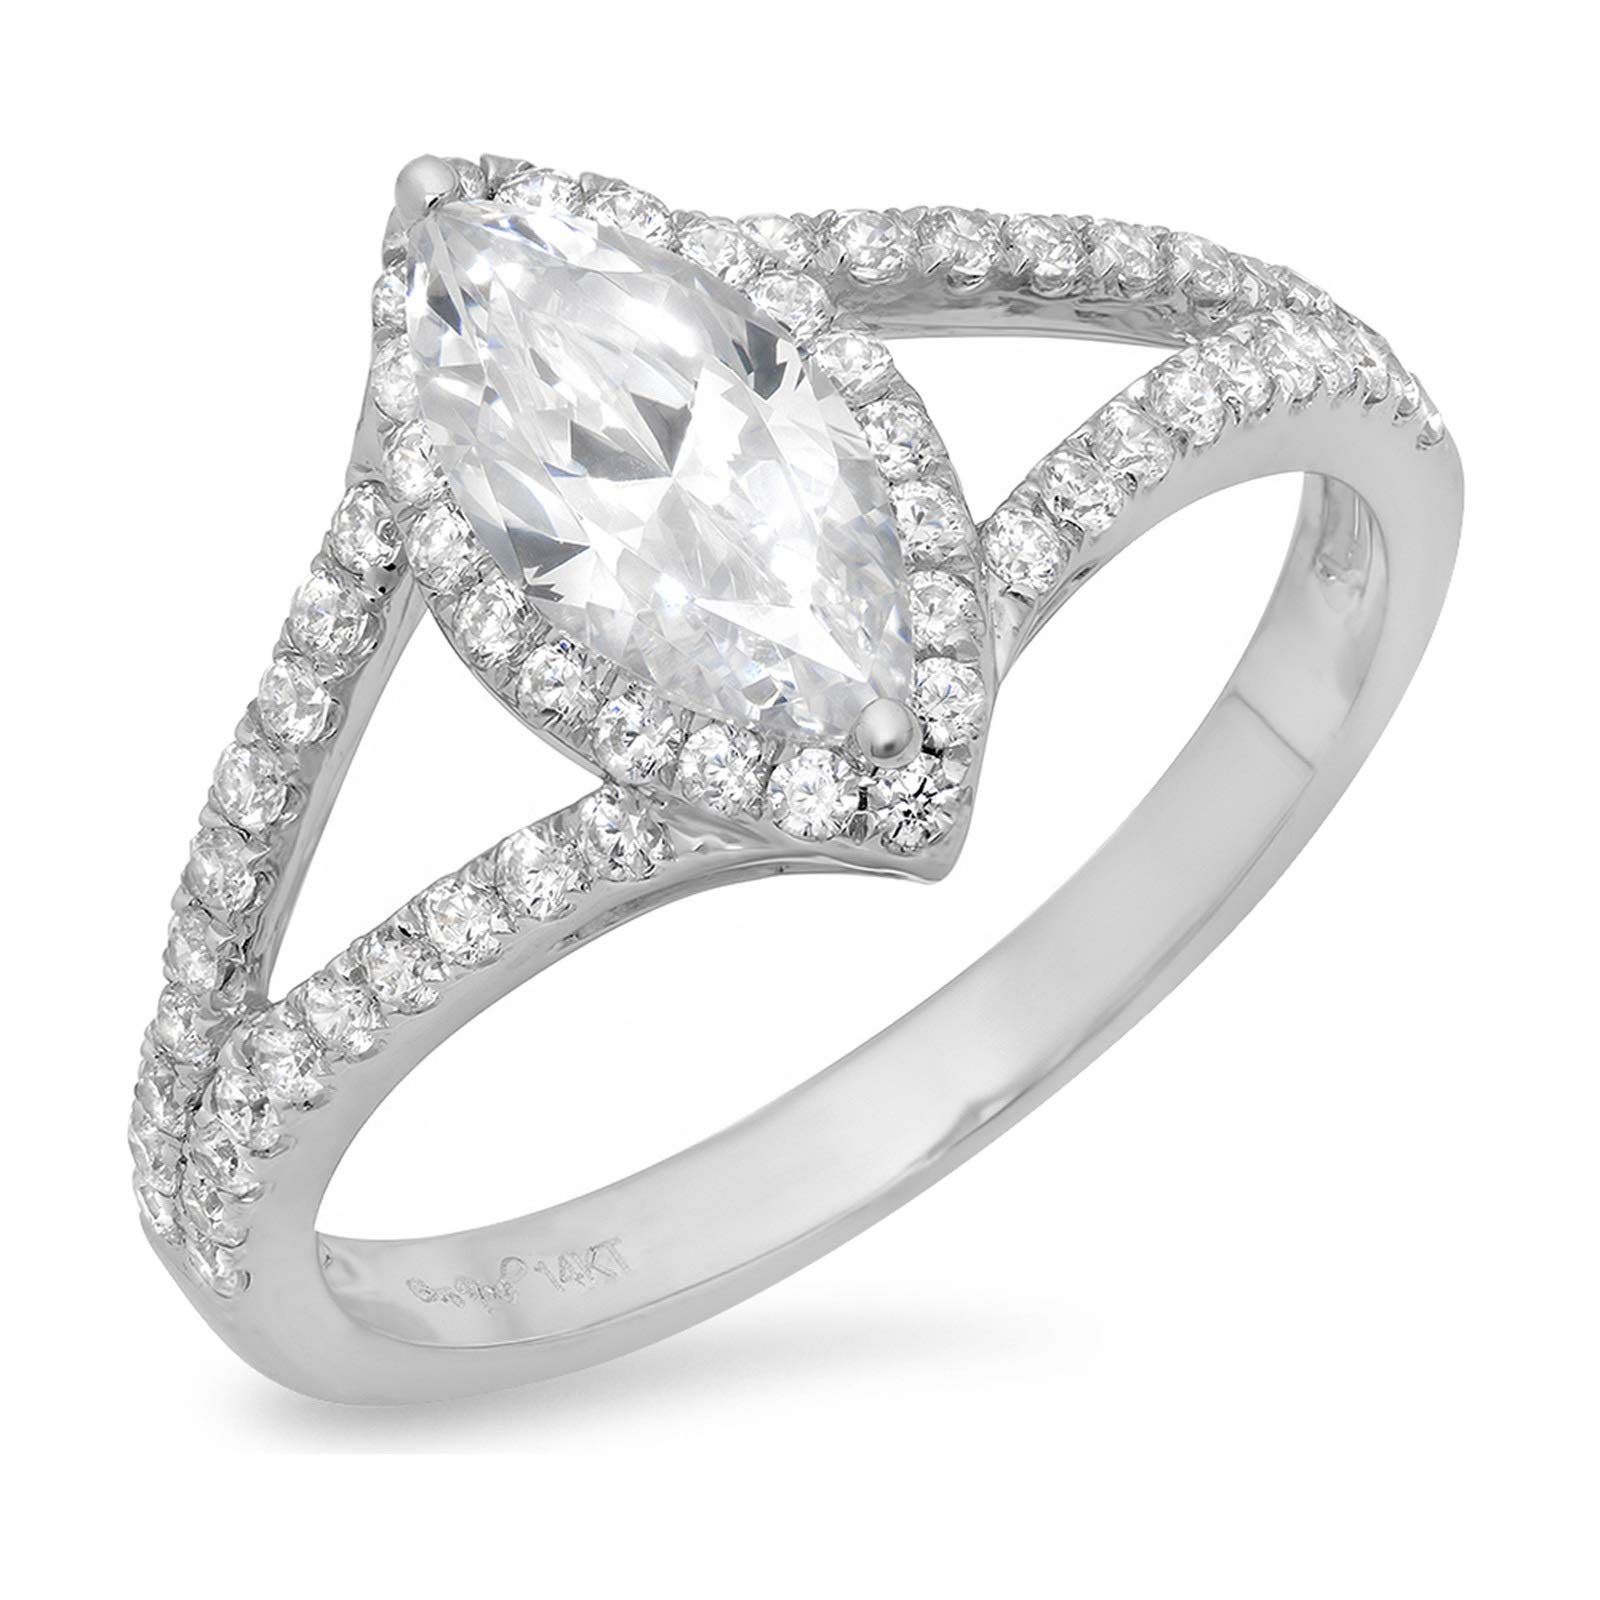 1.14ct Marquise Cut Solitaire split shank Halo Quality Lab Created White Sapphire Ideal VVS1 D & Diamond Simulant Engagement Promise Statement Anniversary Bridal Wedding Ring 14k White Gold, Size 8.75